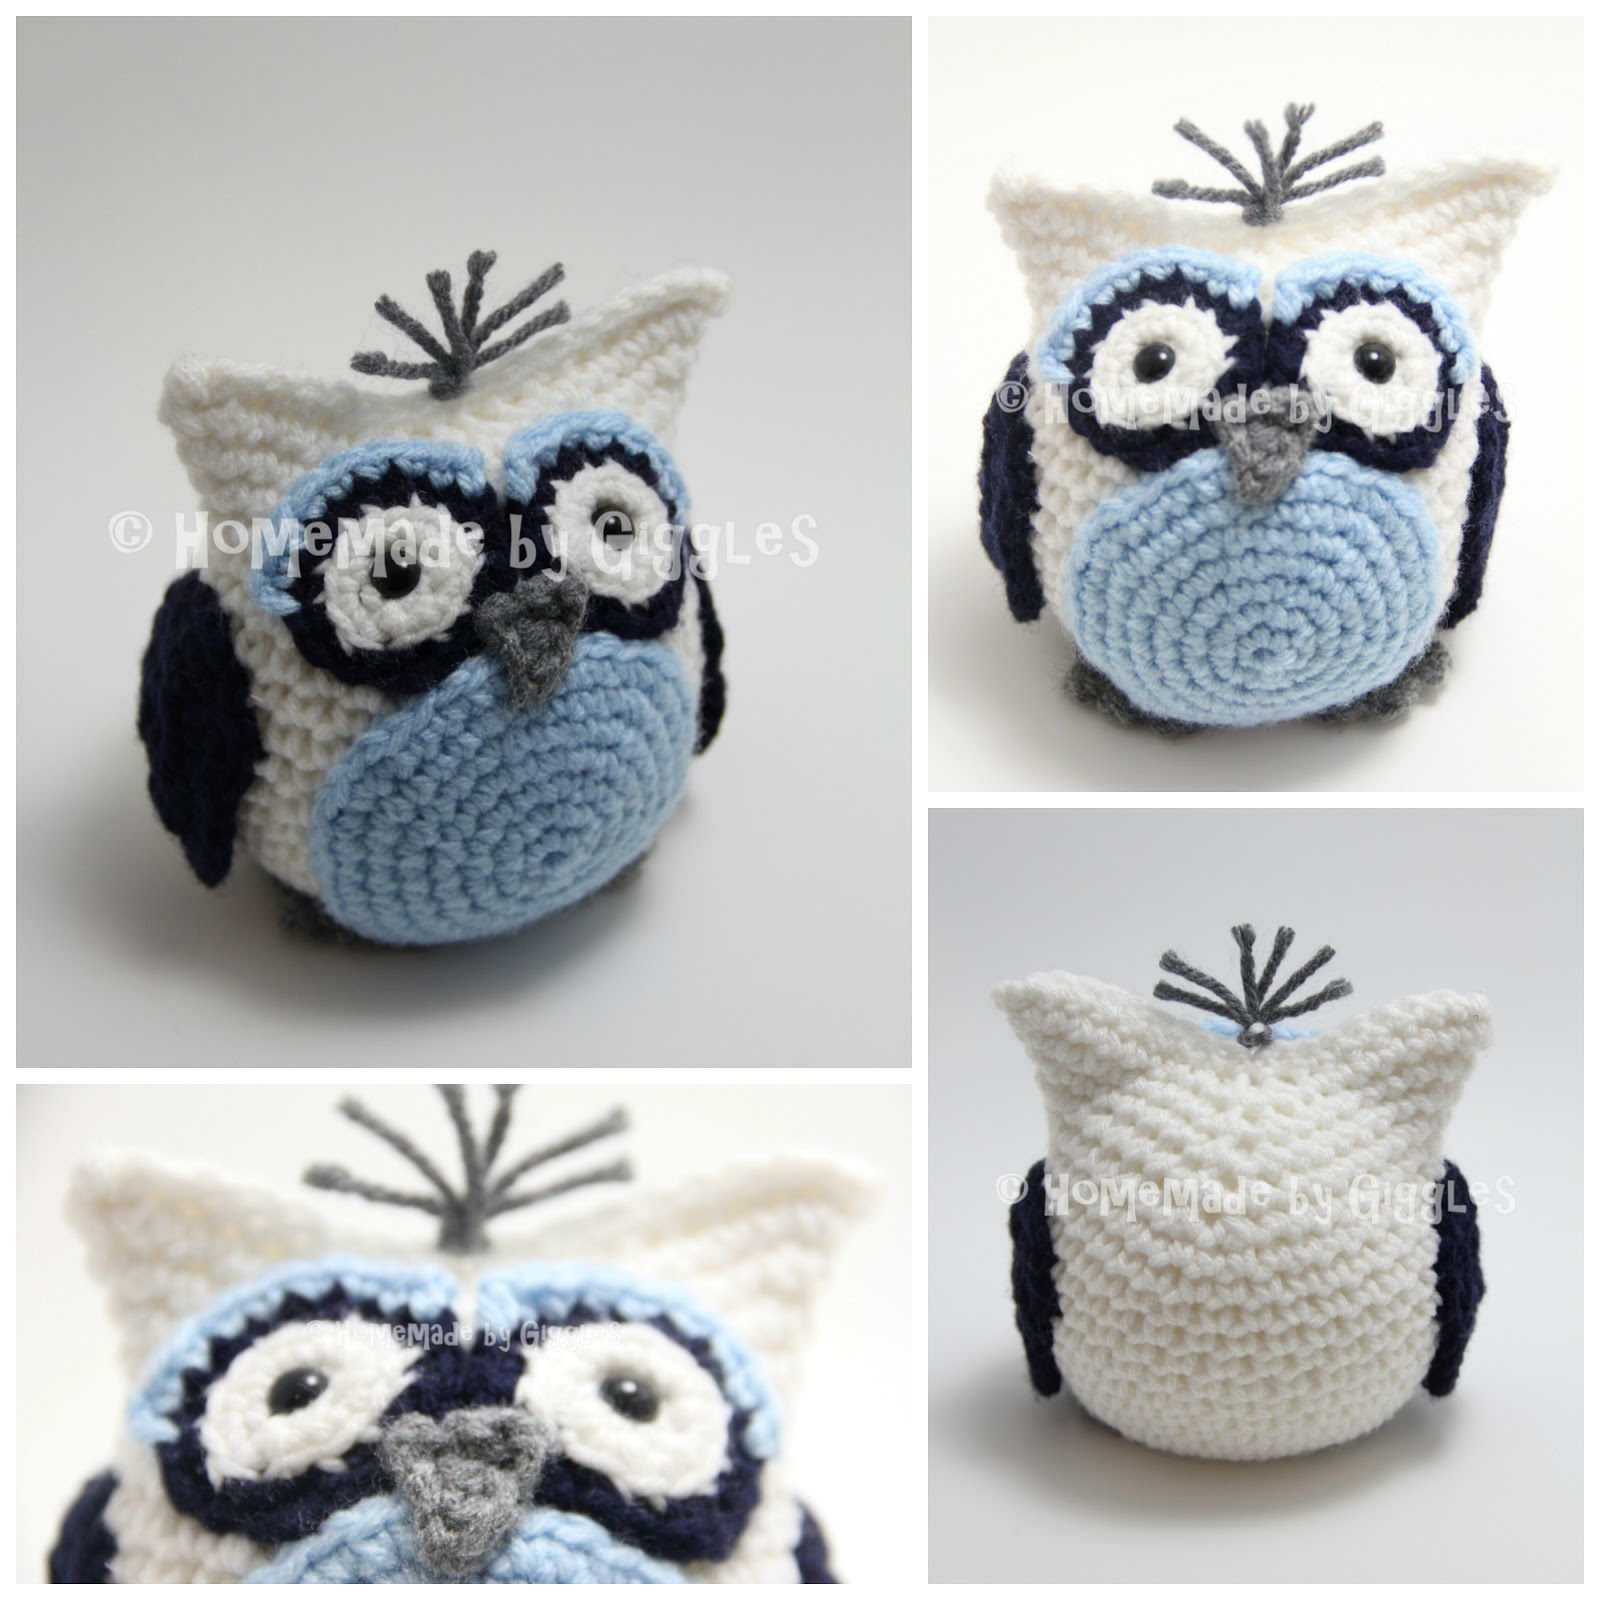 Homemade by Giggles: Bean Bag Owl - FREE Crochet Pattern!